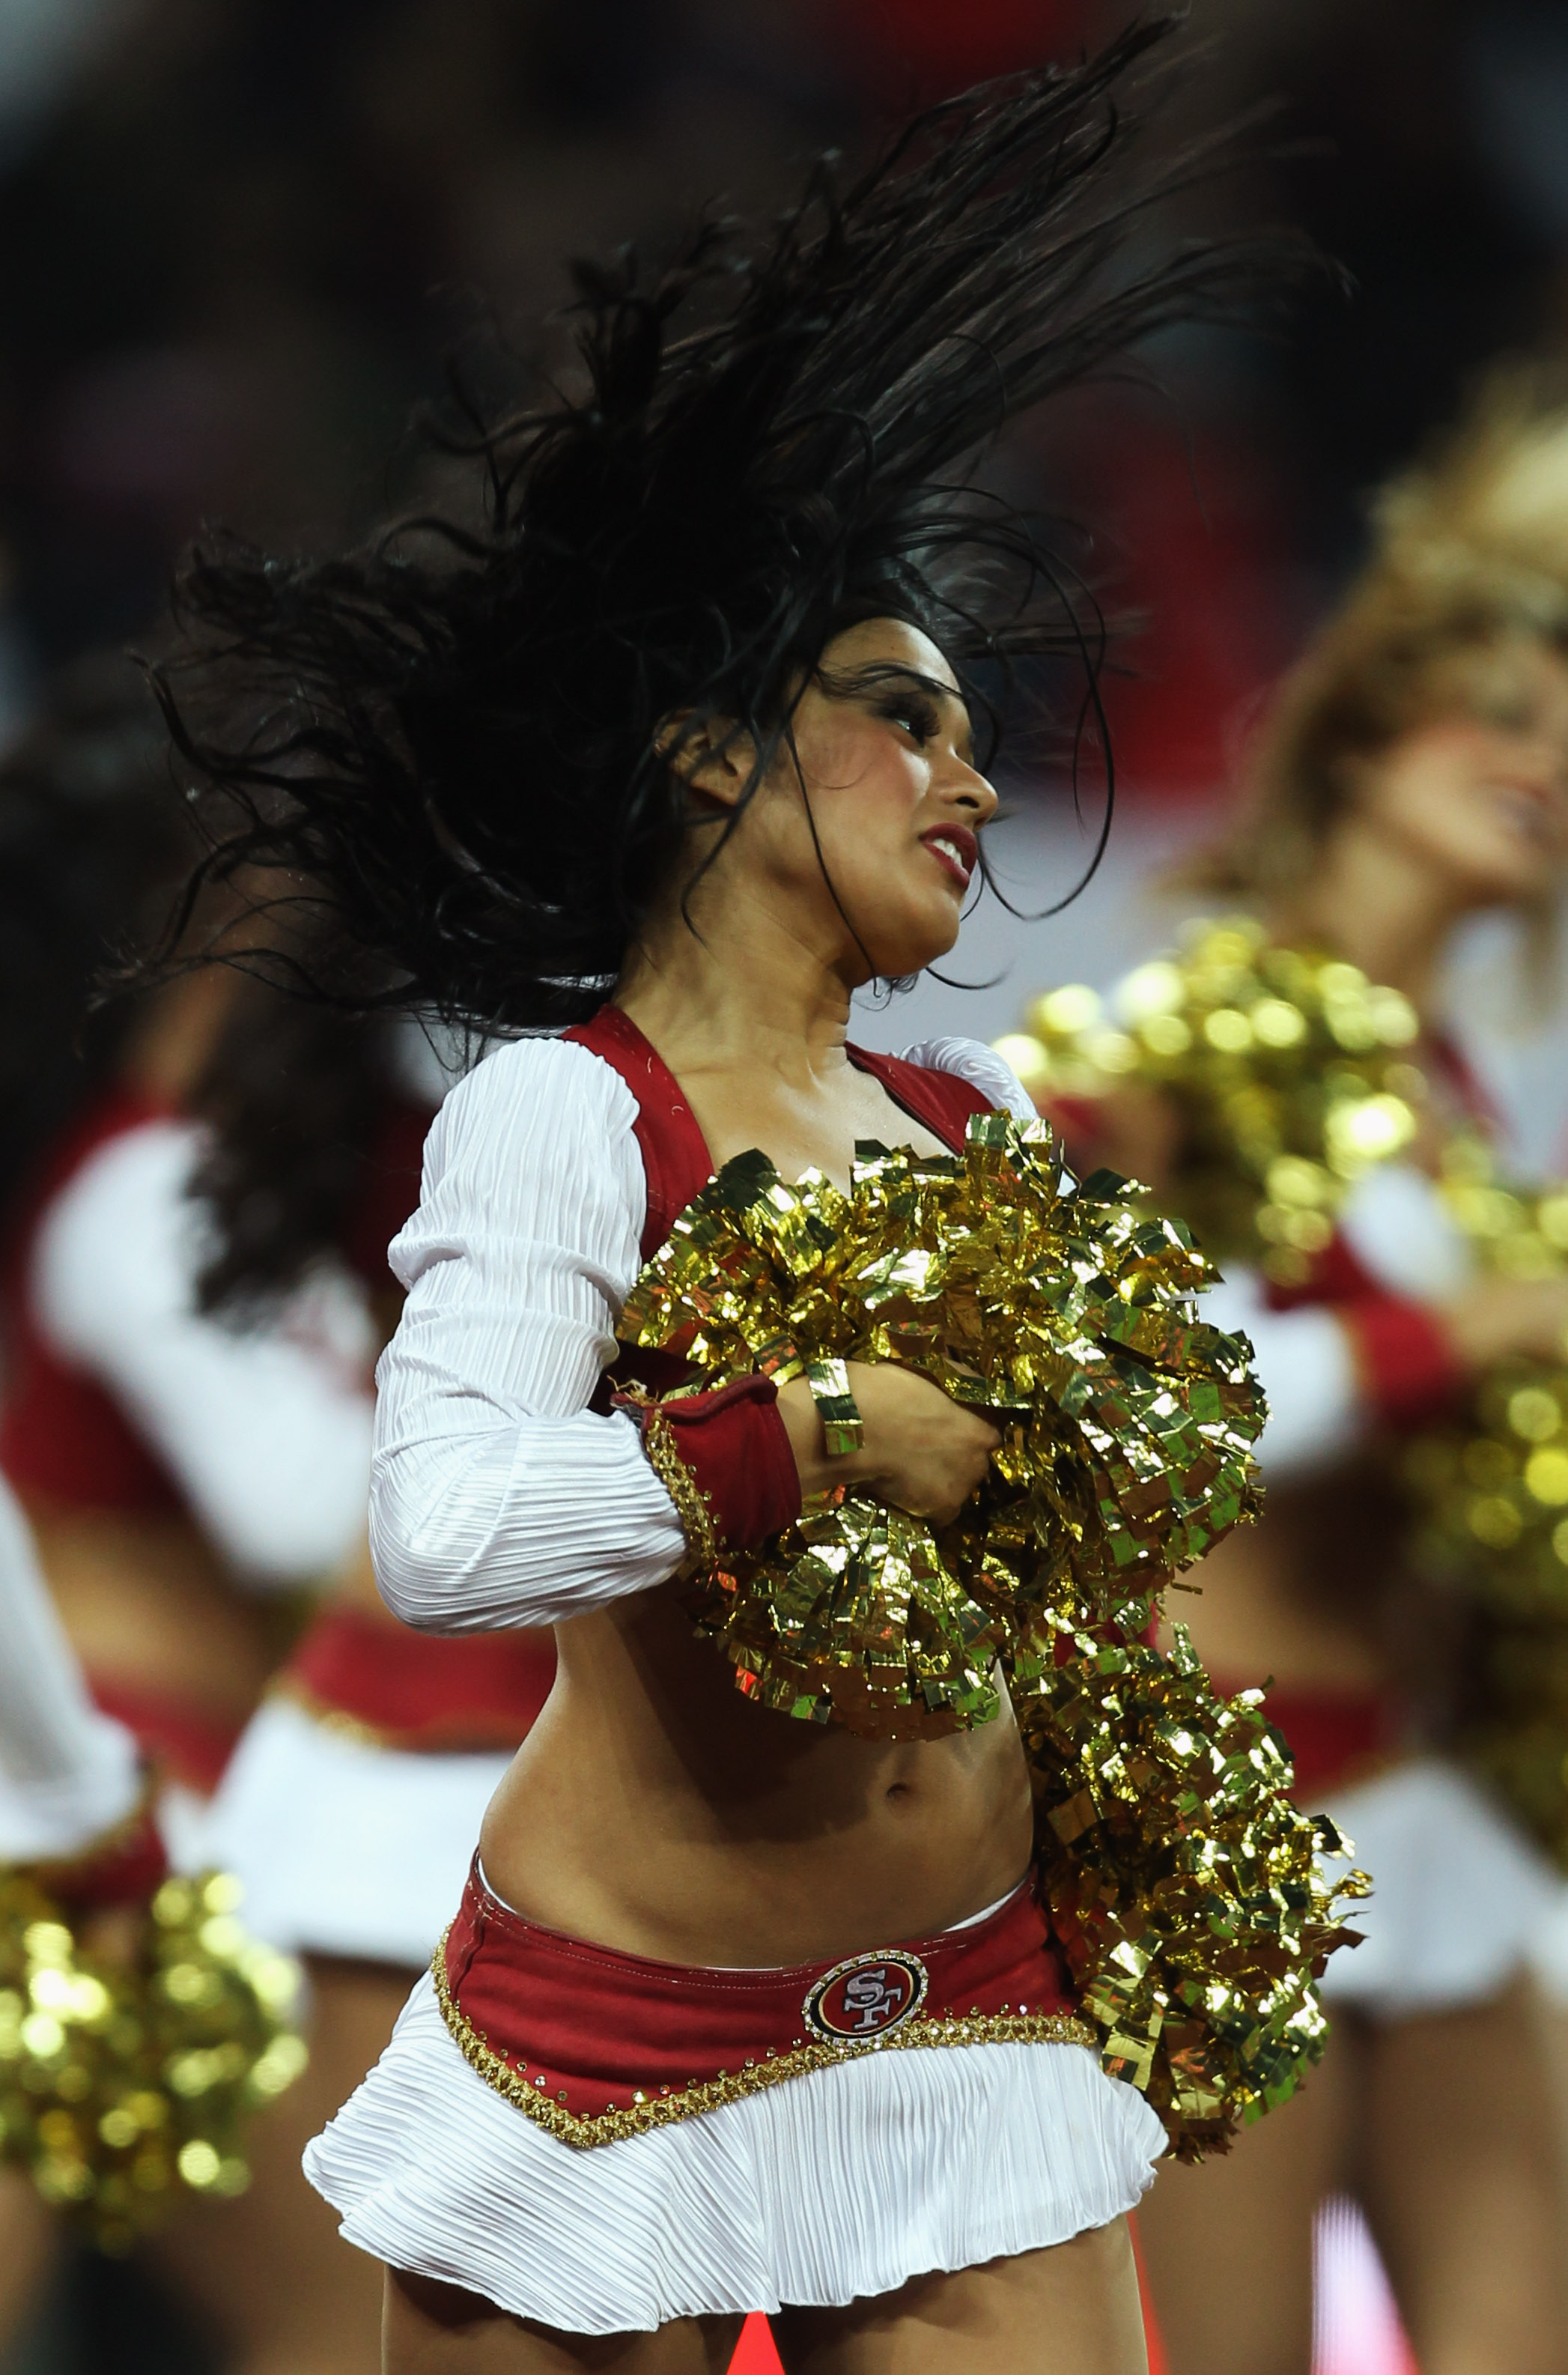 LONDON, ENGLAND - OCTOBER 31:  San Francisco 49ers cheerleaders entertain the crowd prior to the NFL International Series match between Denver Broncos and San Francisco 49ers at Wembley Stadium on October 31, 2010 in London, England. This is the fourth oc